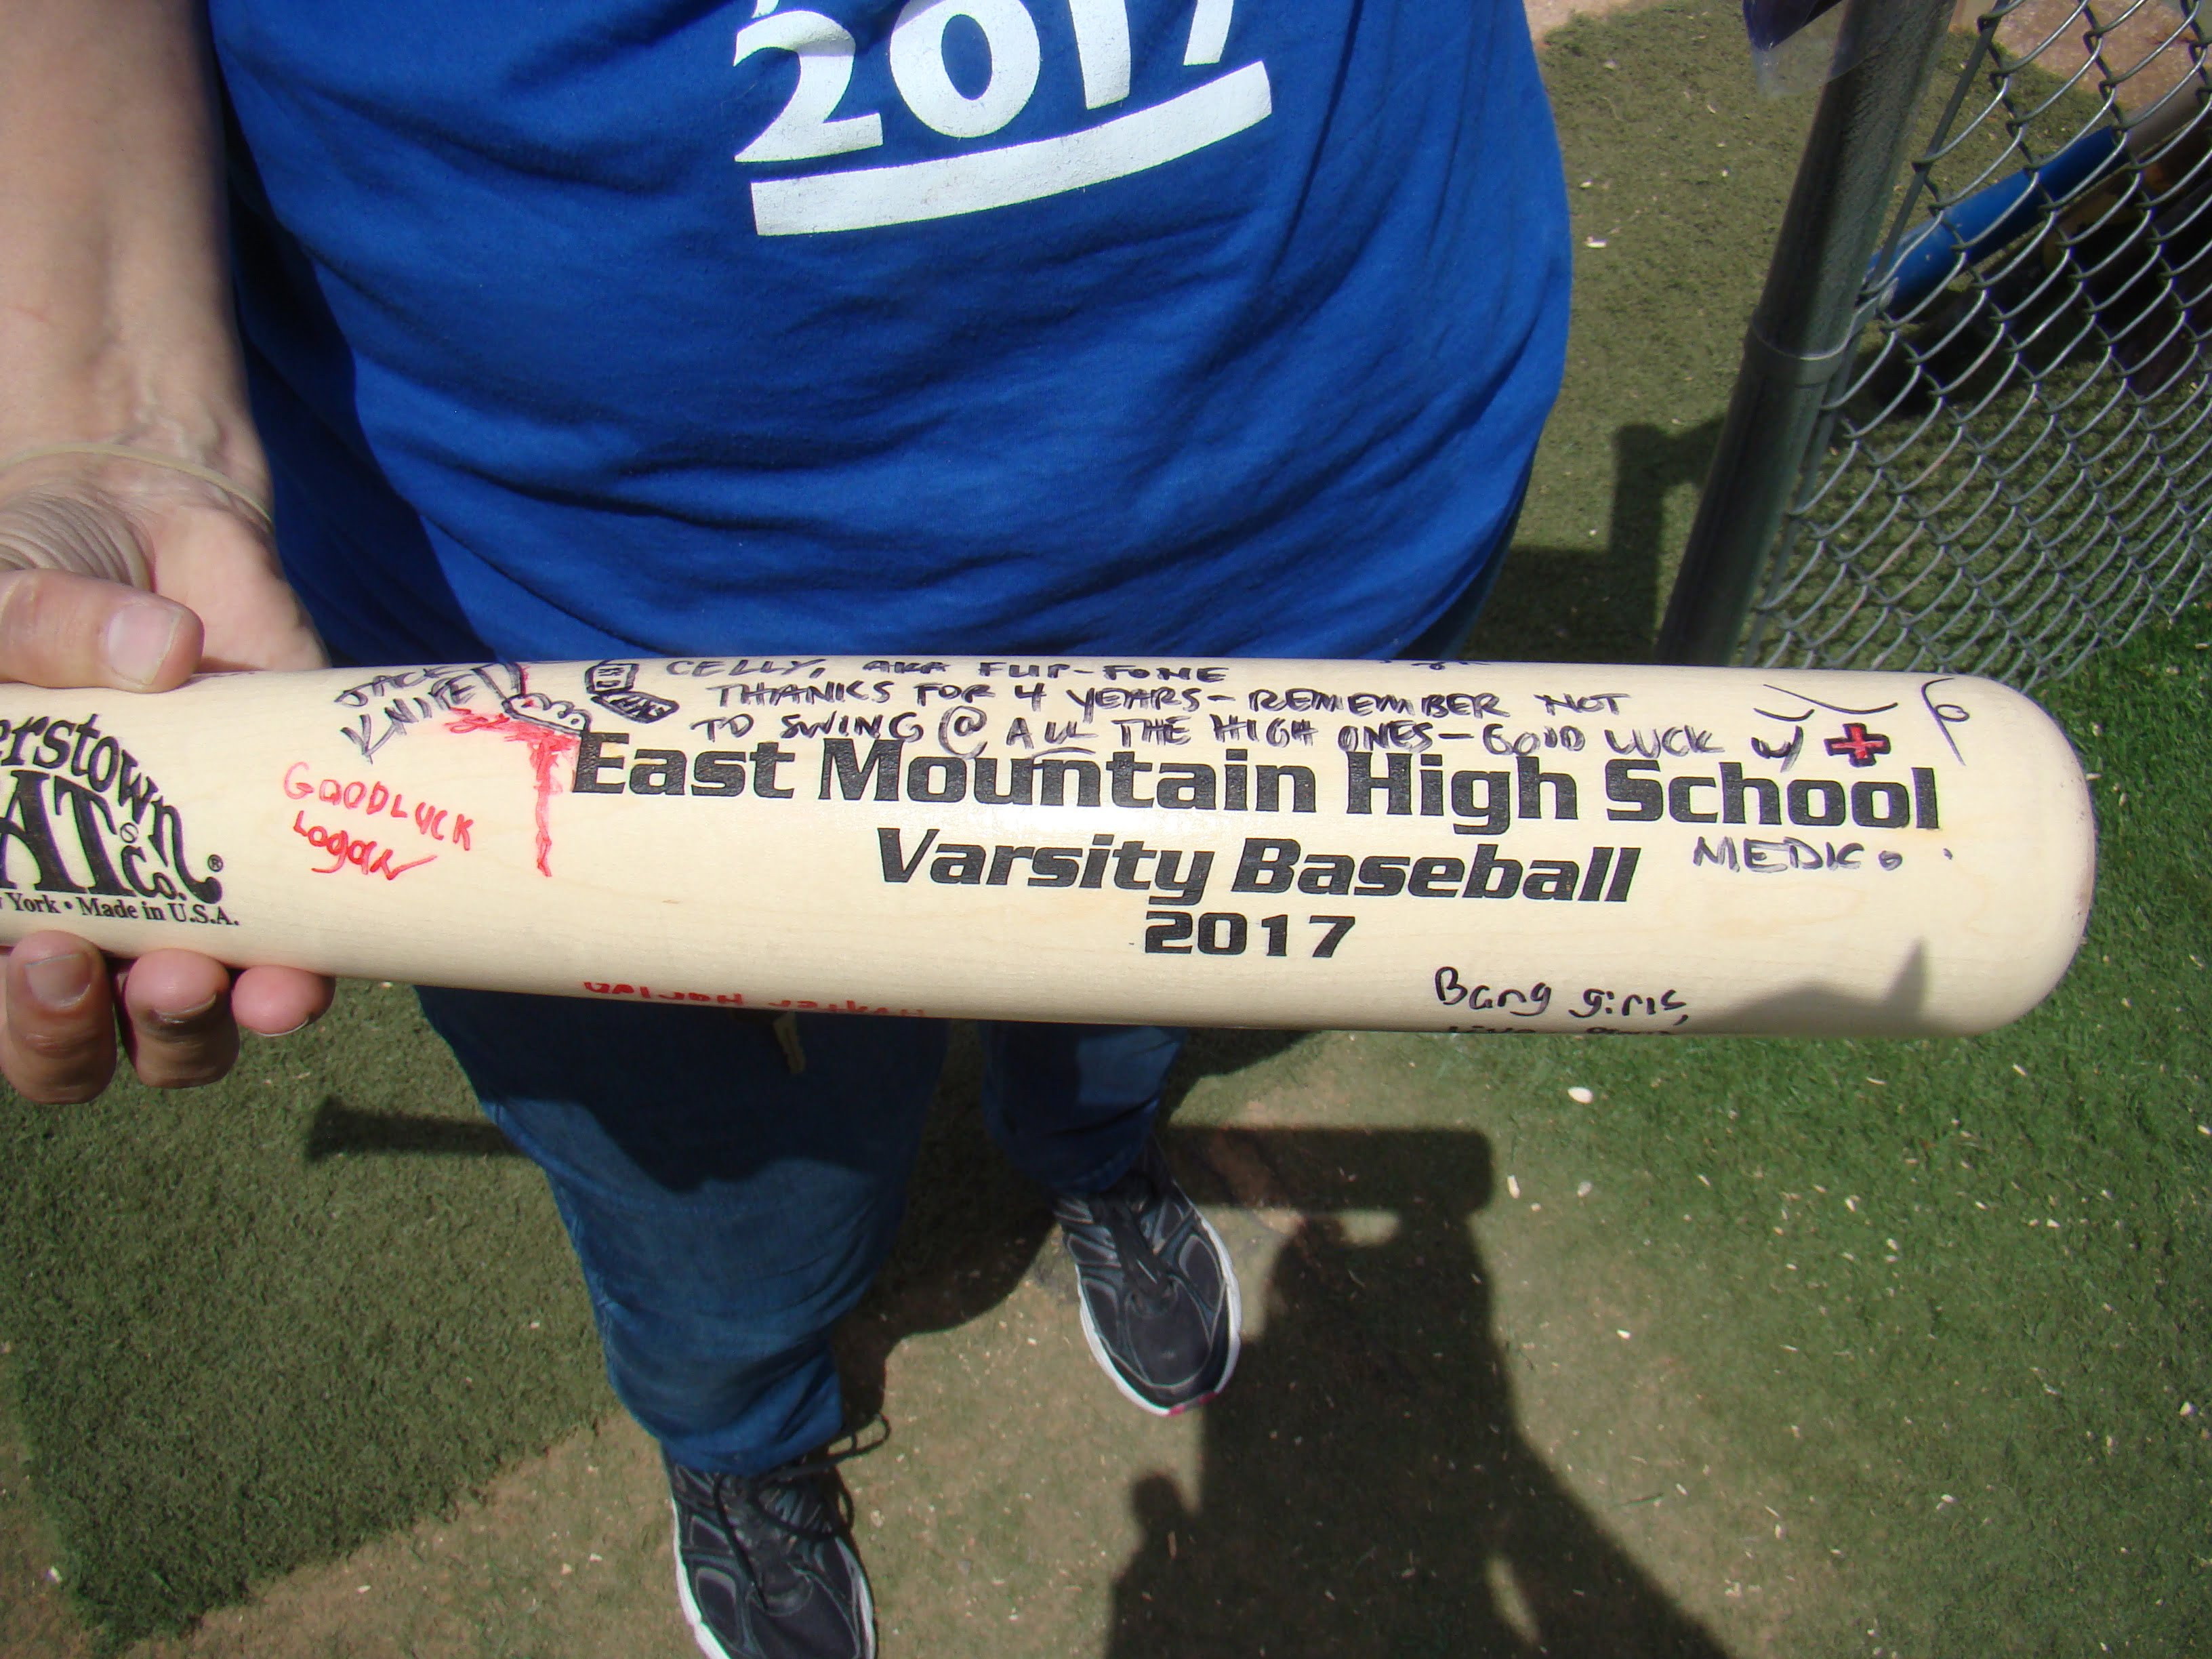 East Mountain baseball season ends at the hands of Hope Christian